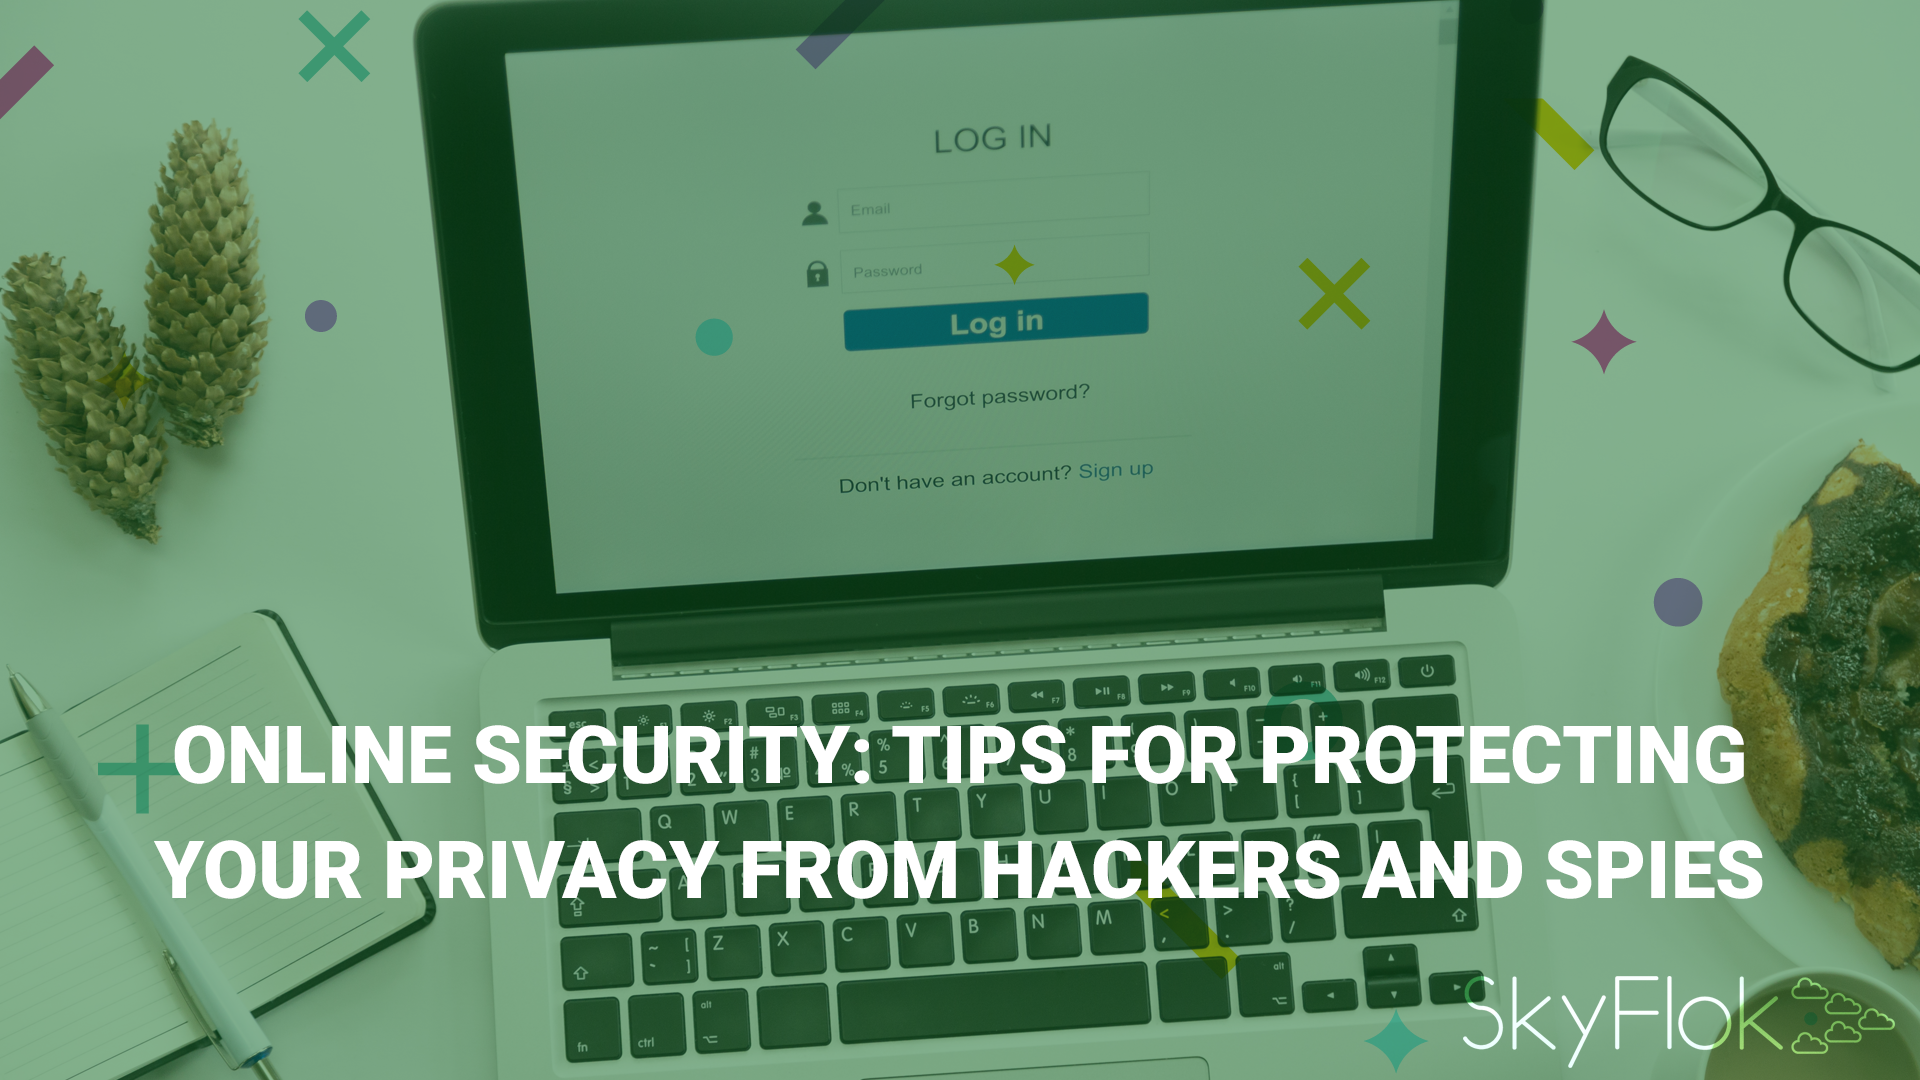 Online security: Tips for protecting your privacy from hackers and spies